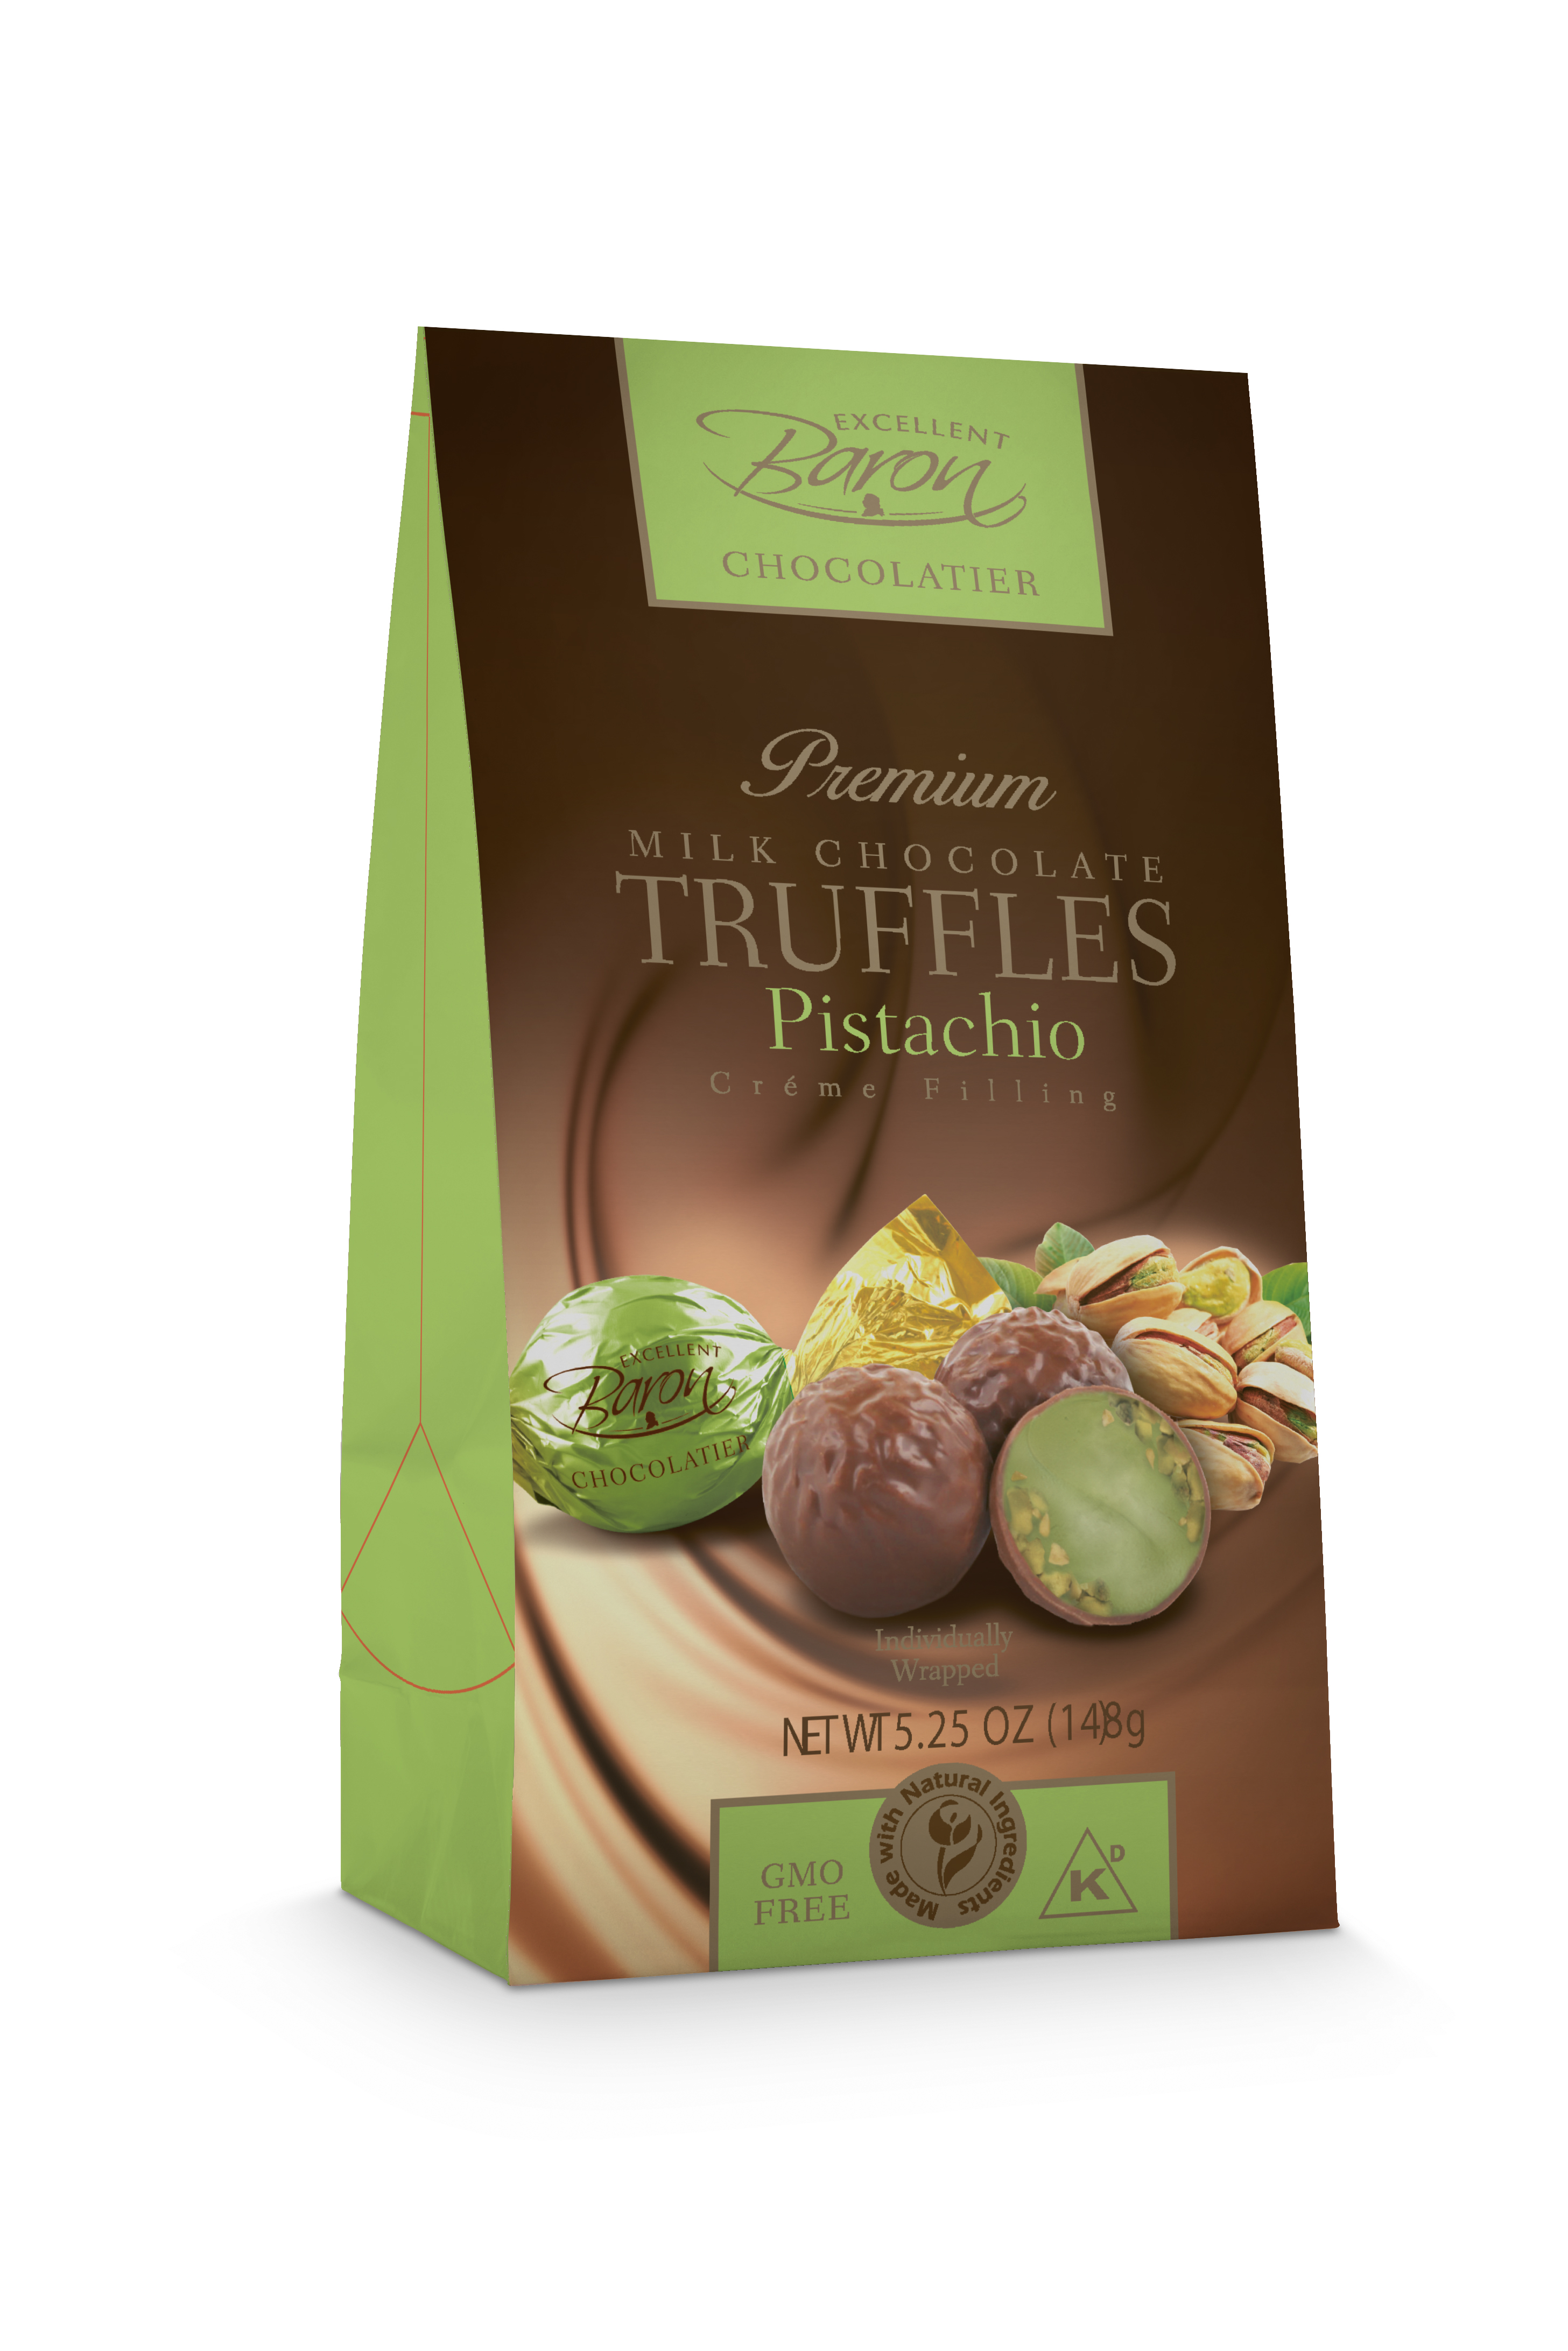 New Milk Chocolate with Pistachio Crème Filling by European Chocolate/ Milano (Excellent Baron Chocolatier)